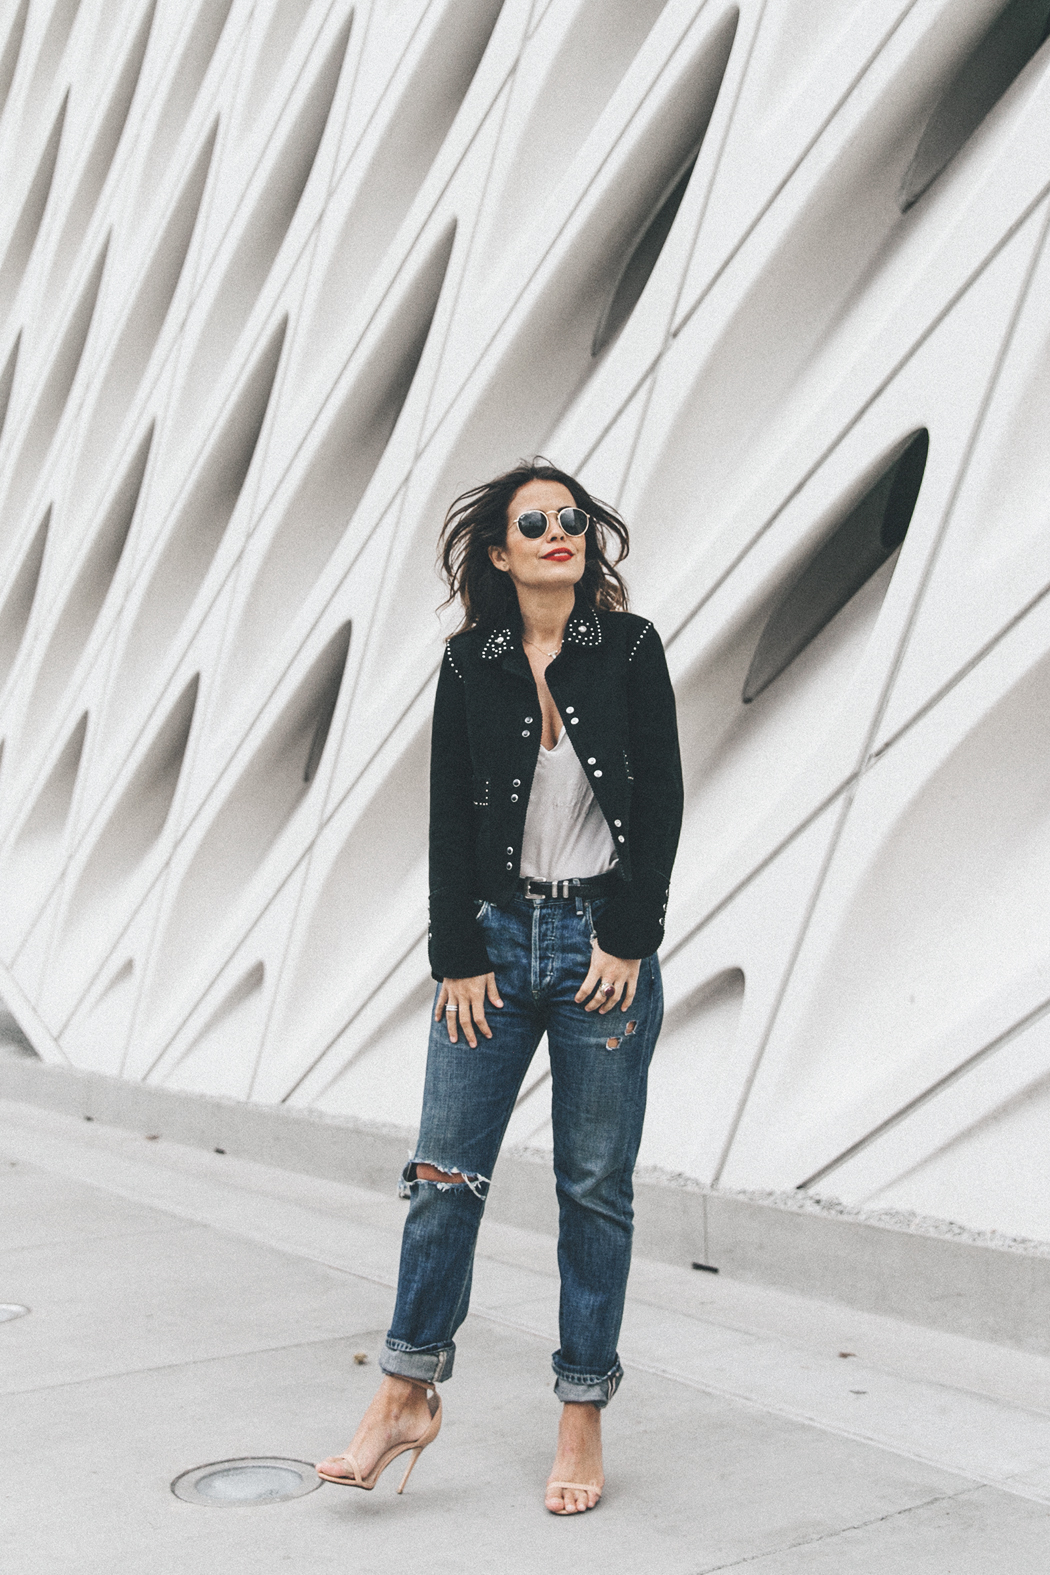 Sandro_Paris-Suede_Jacket-Citizen_OF_Humanity_Jeans-Raye_Sandals-The_Broad-Downtown_Los_Angeles-Outfit-Street_Style-30